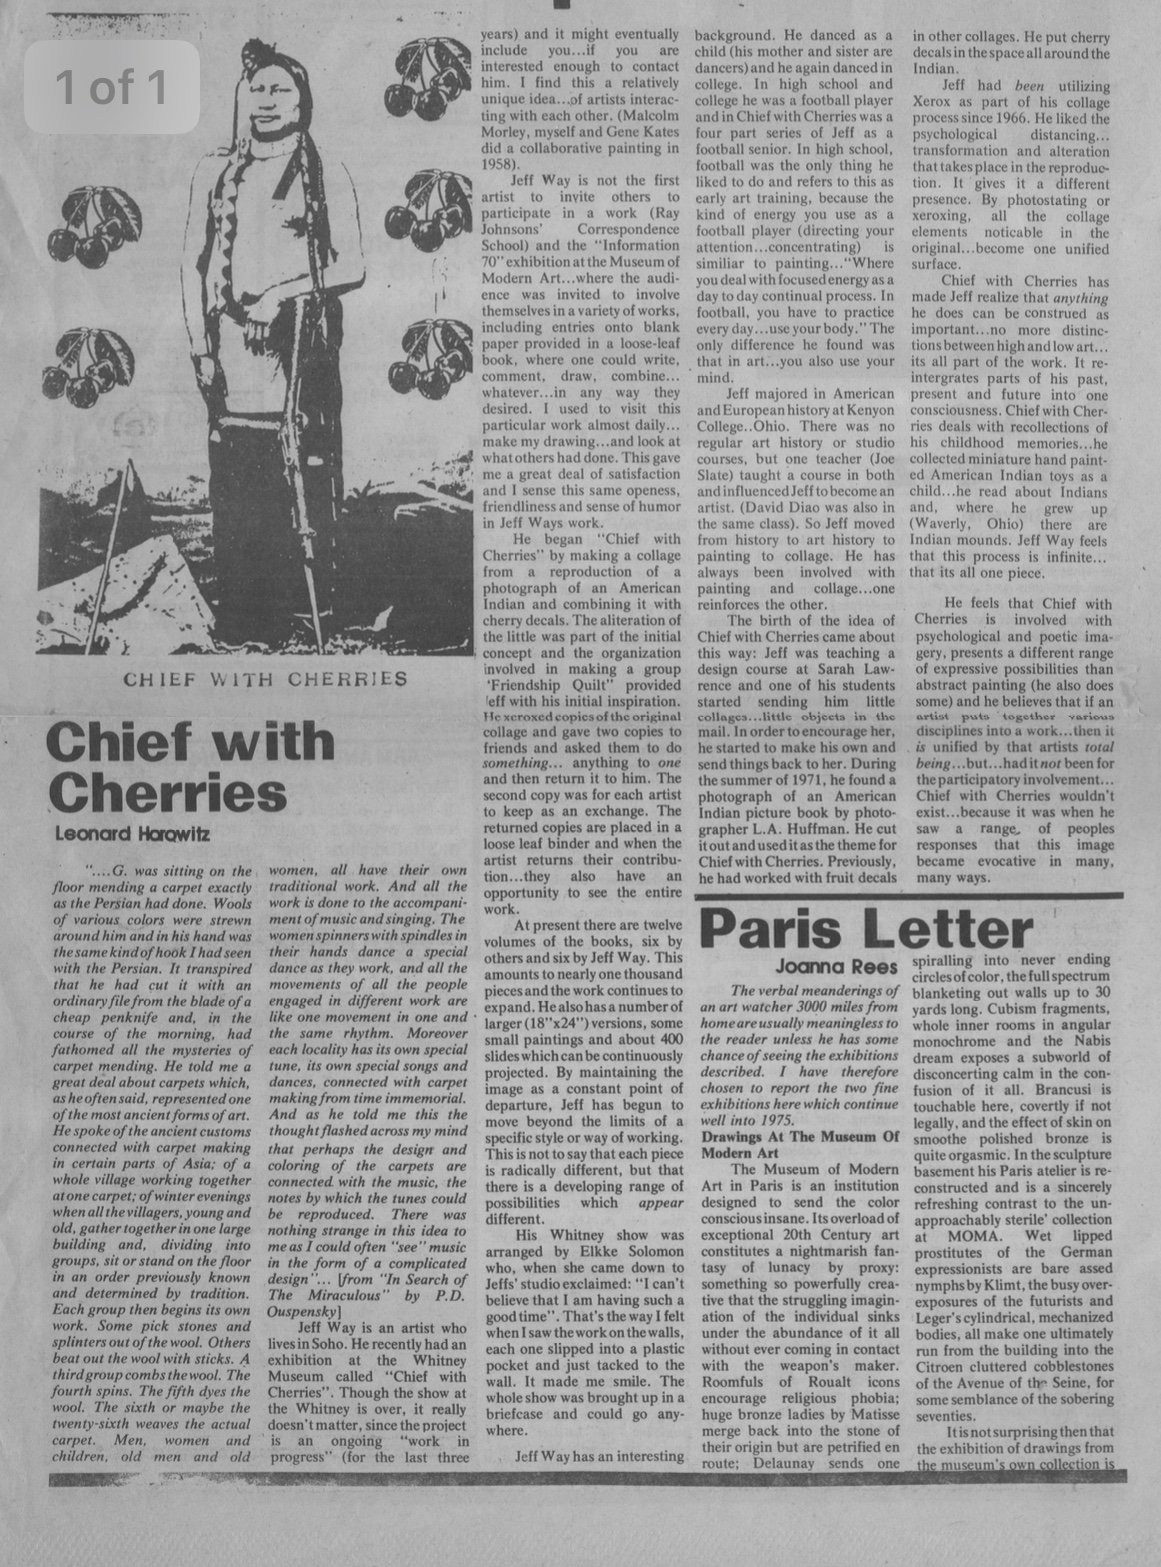 Chief with Cherries, Horowaitz Leonard, The Soho Weekly News, 1974